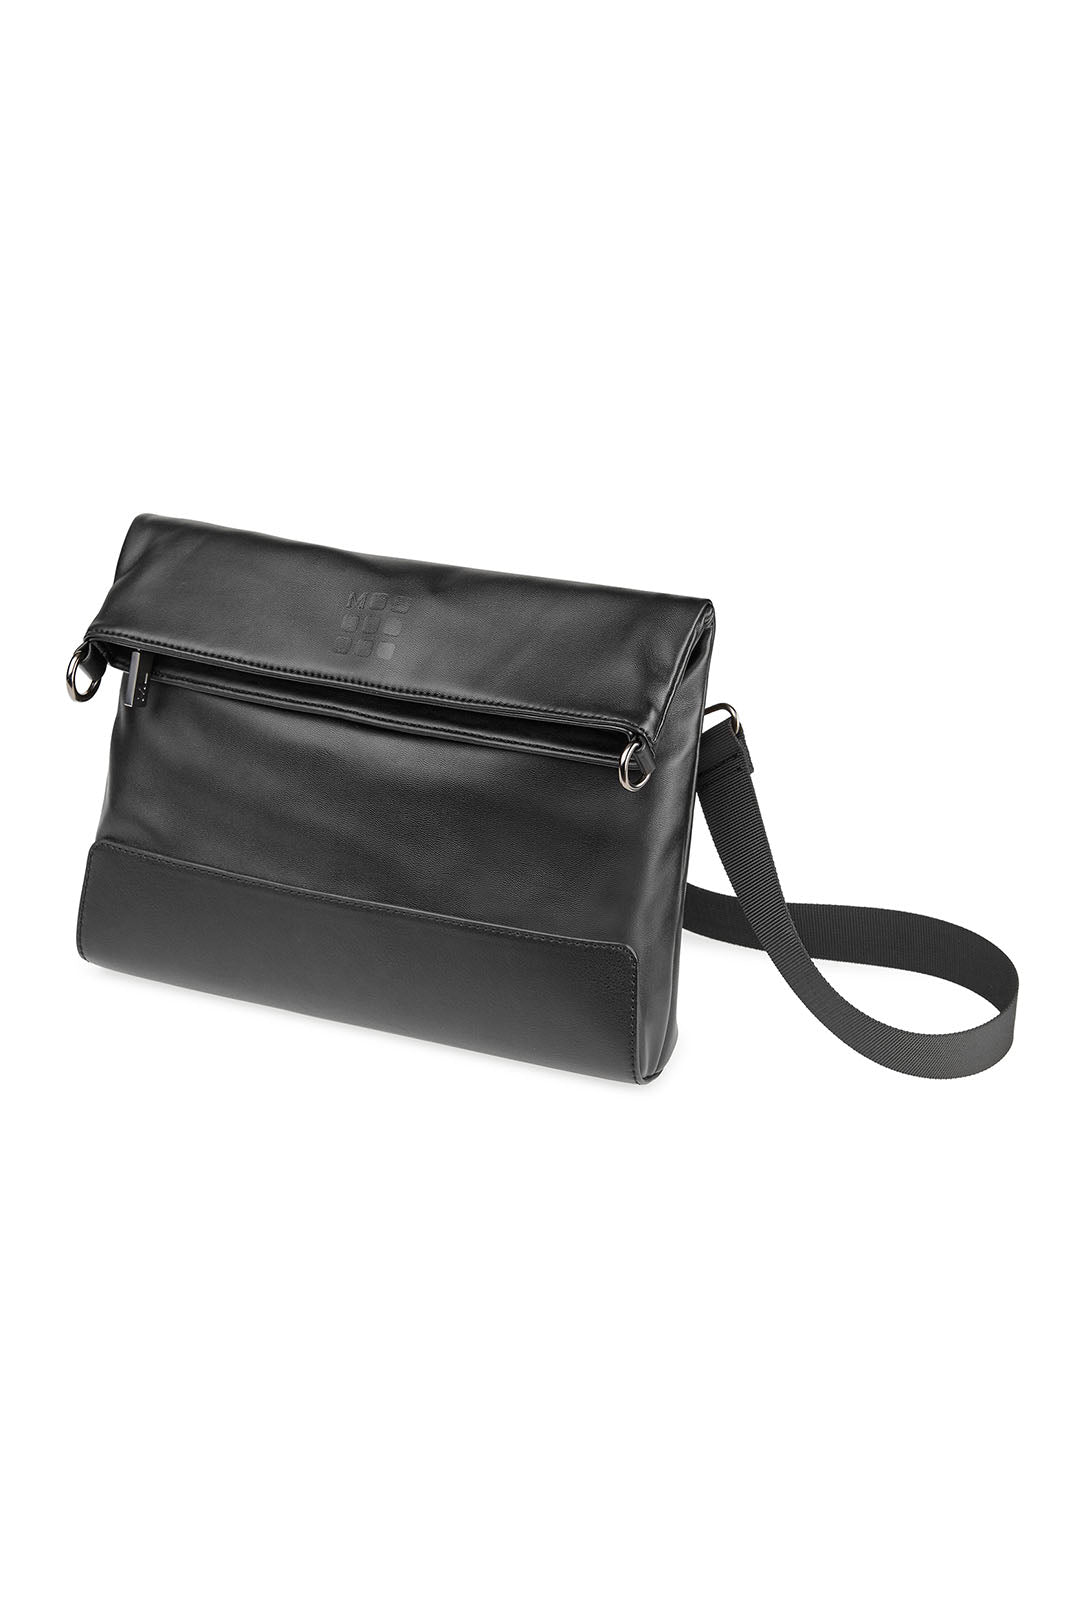 Moleskine - Classic Crossbody Bag - Black